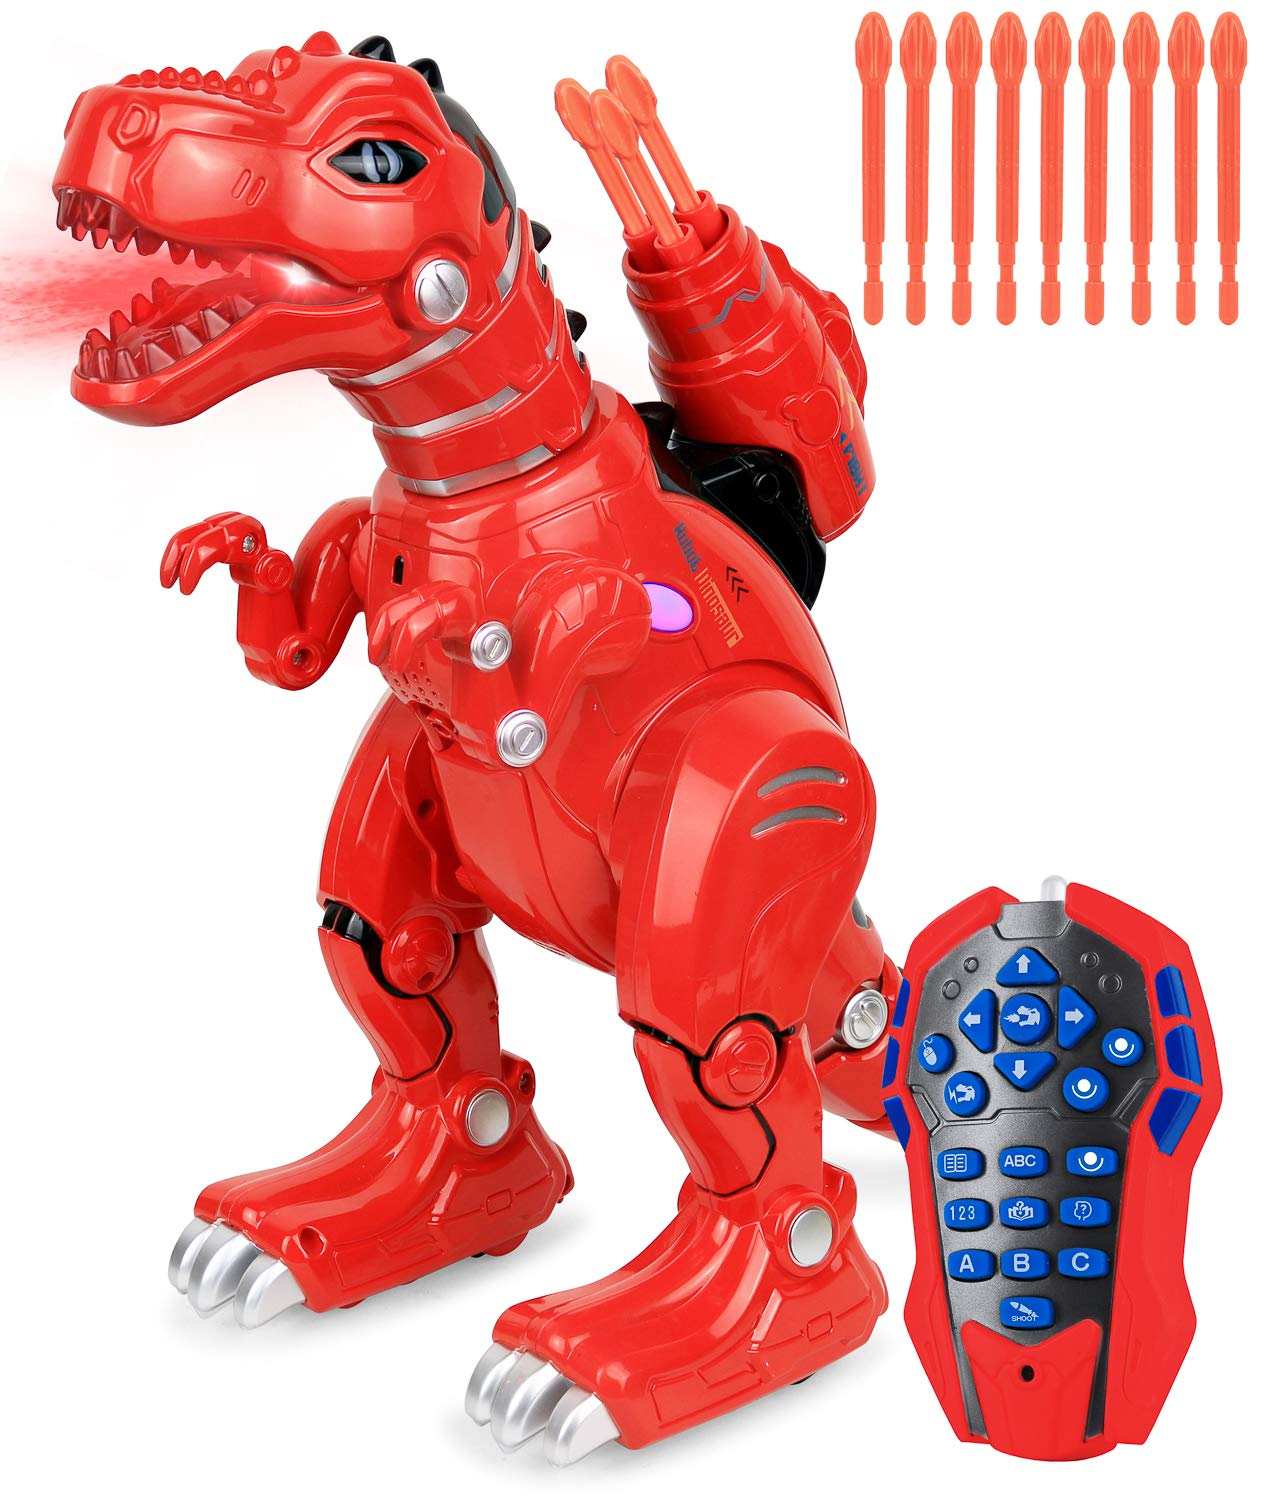 Click N' Play Remote Control Dinosaur Highly Intelligent Fire Breathing Dinosaur Robot with Loads of Features Programmable Entertains Sing Dances Shoots Arrows Askes Riddles Etc